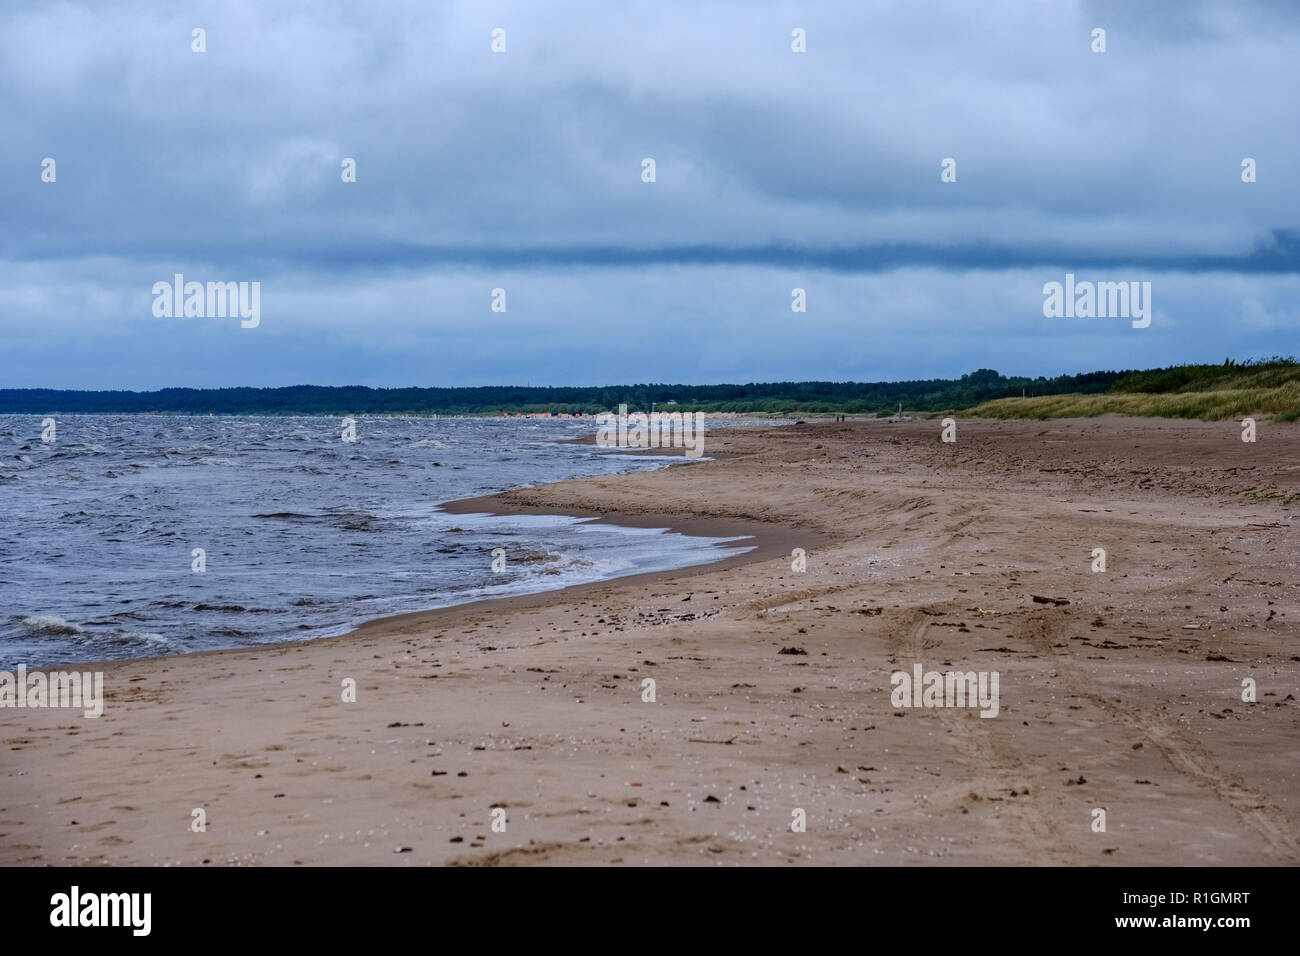 dirty beach by the sea with storm clouds above in calm evening - Stock Image